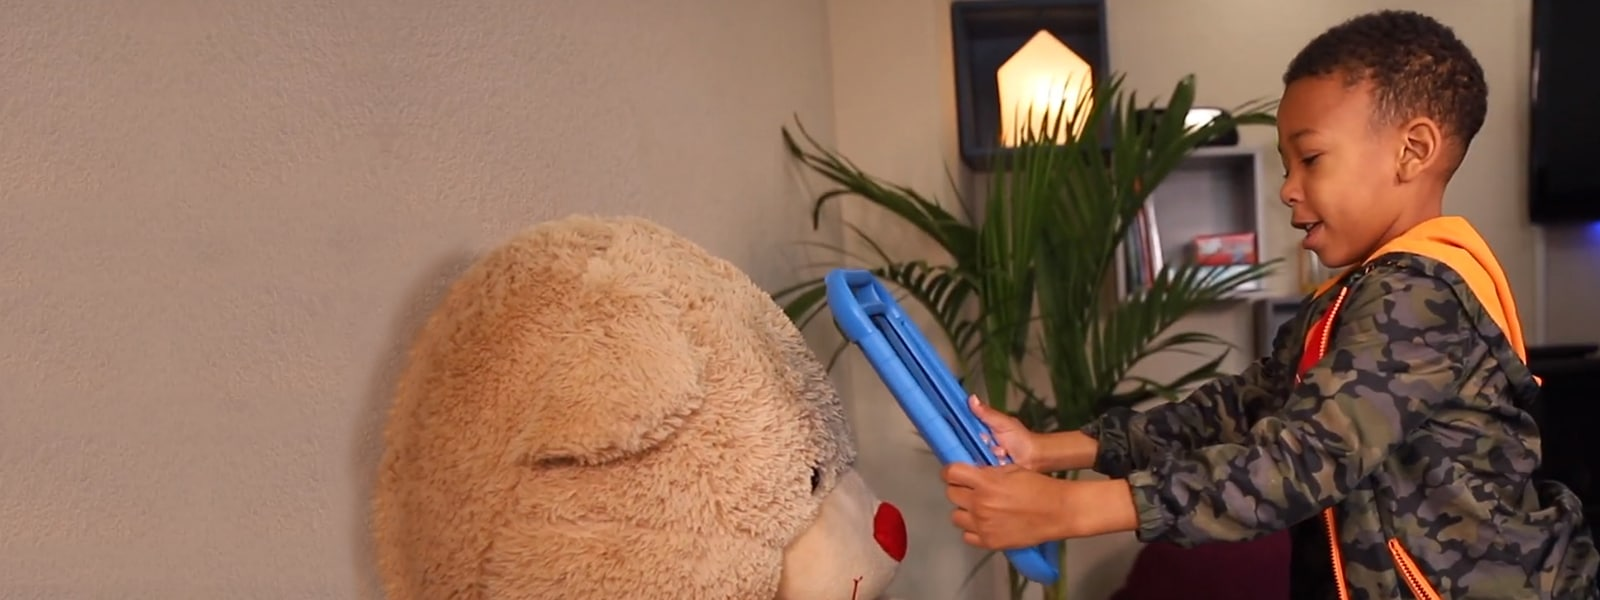 Young boy uses a tablet with InnerVoice app to interact with toy.